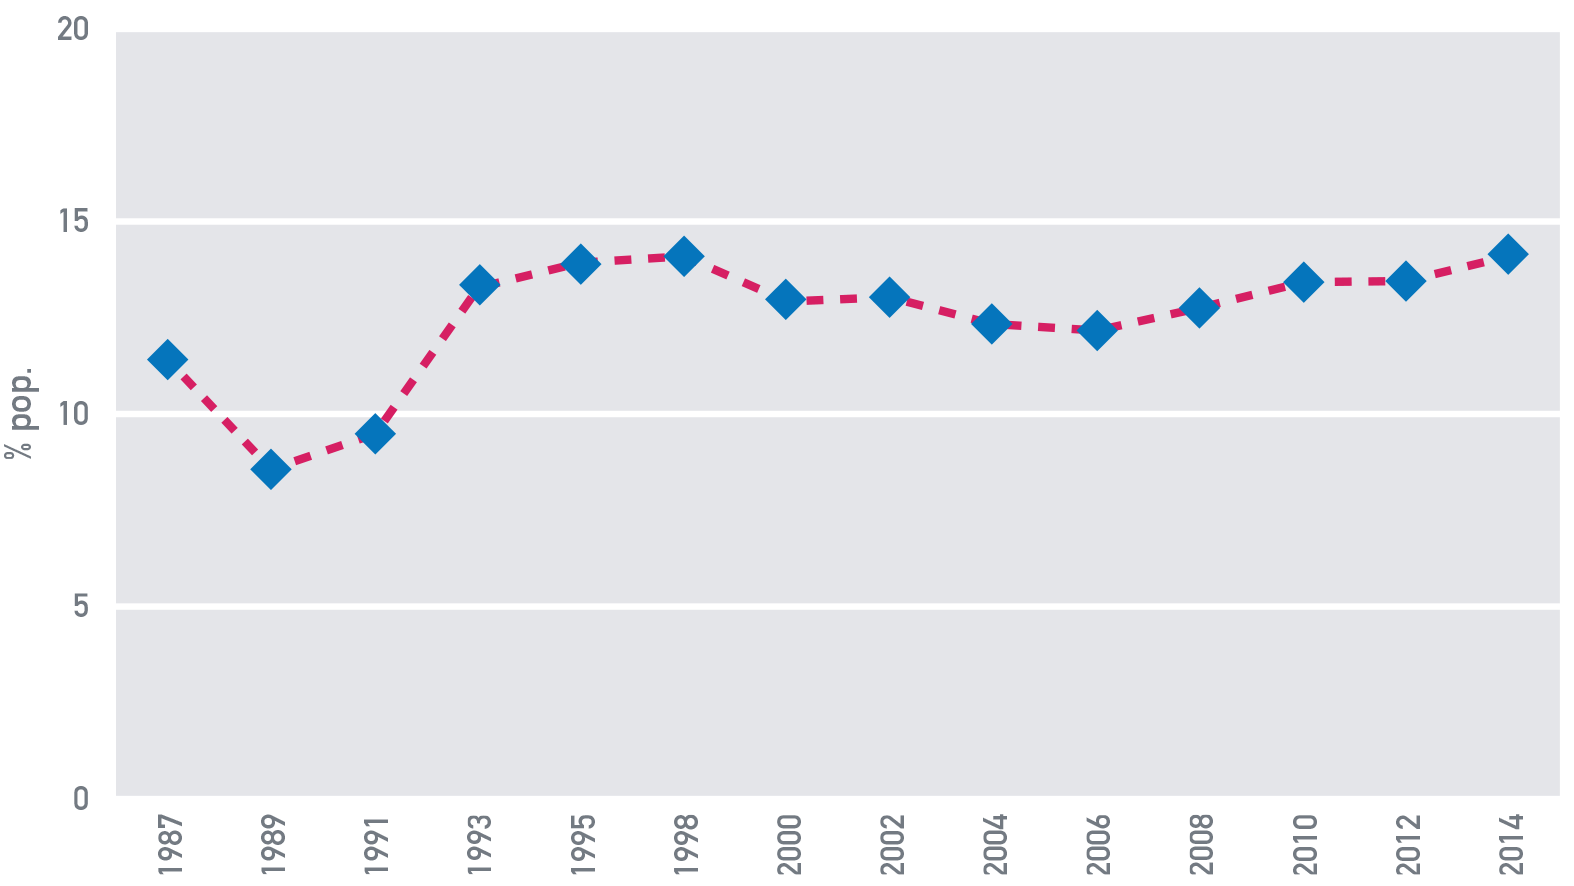 Fig. A.8: Povertà in Italia, 1987-2014